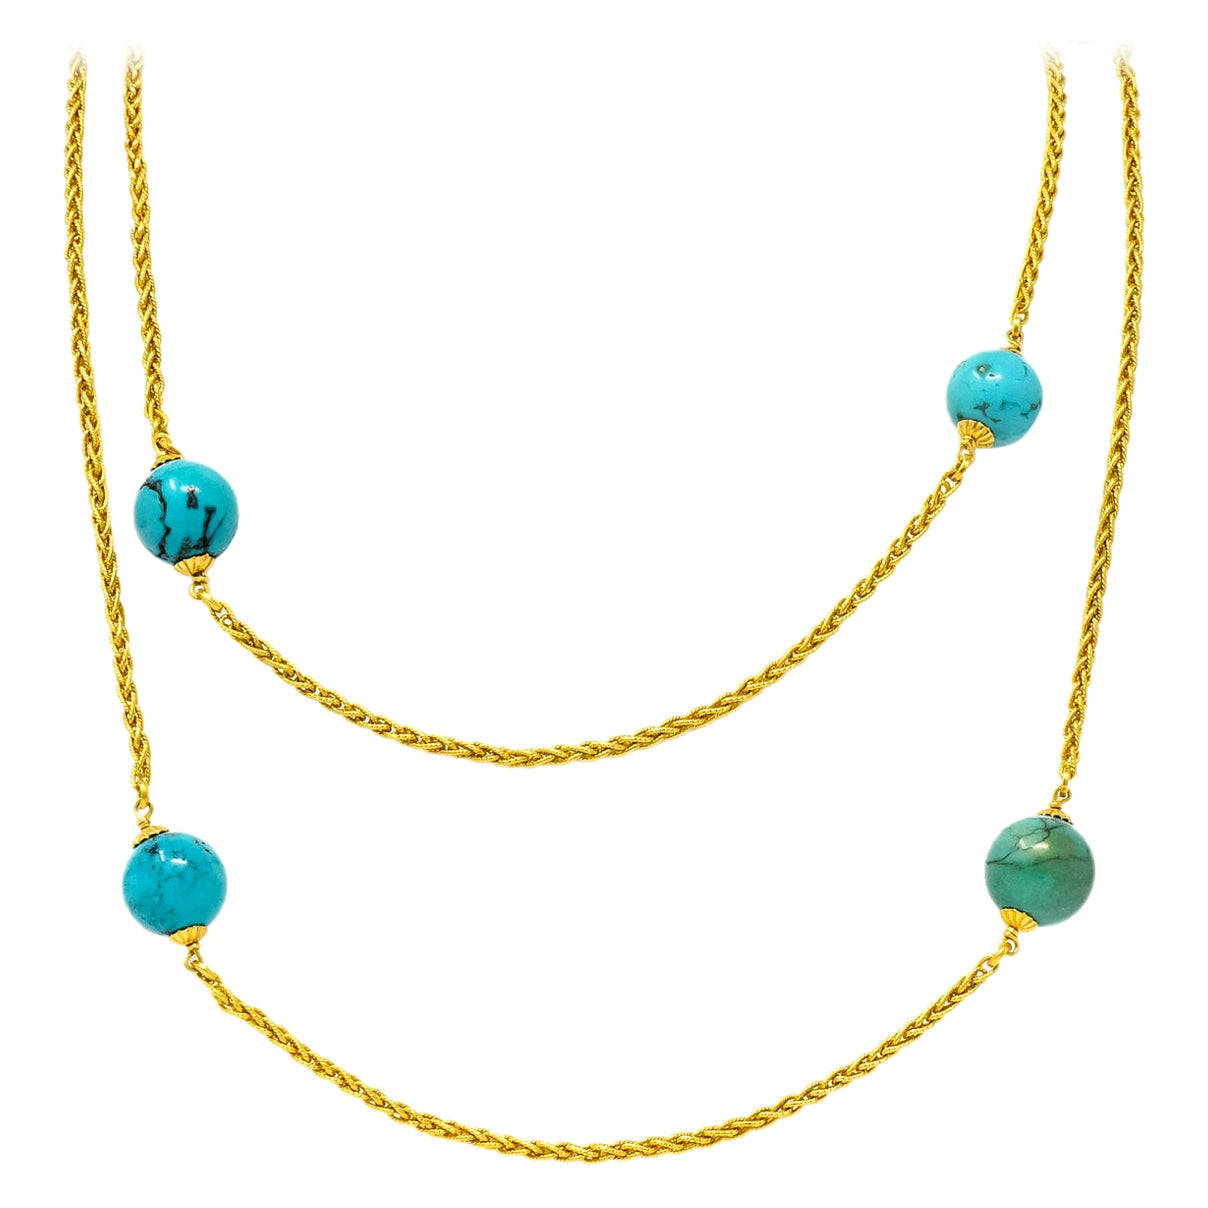 Late Victorian Turquoise Bead 18 Karat Gold Long Chain Necklace